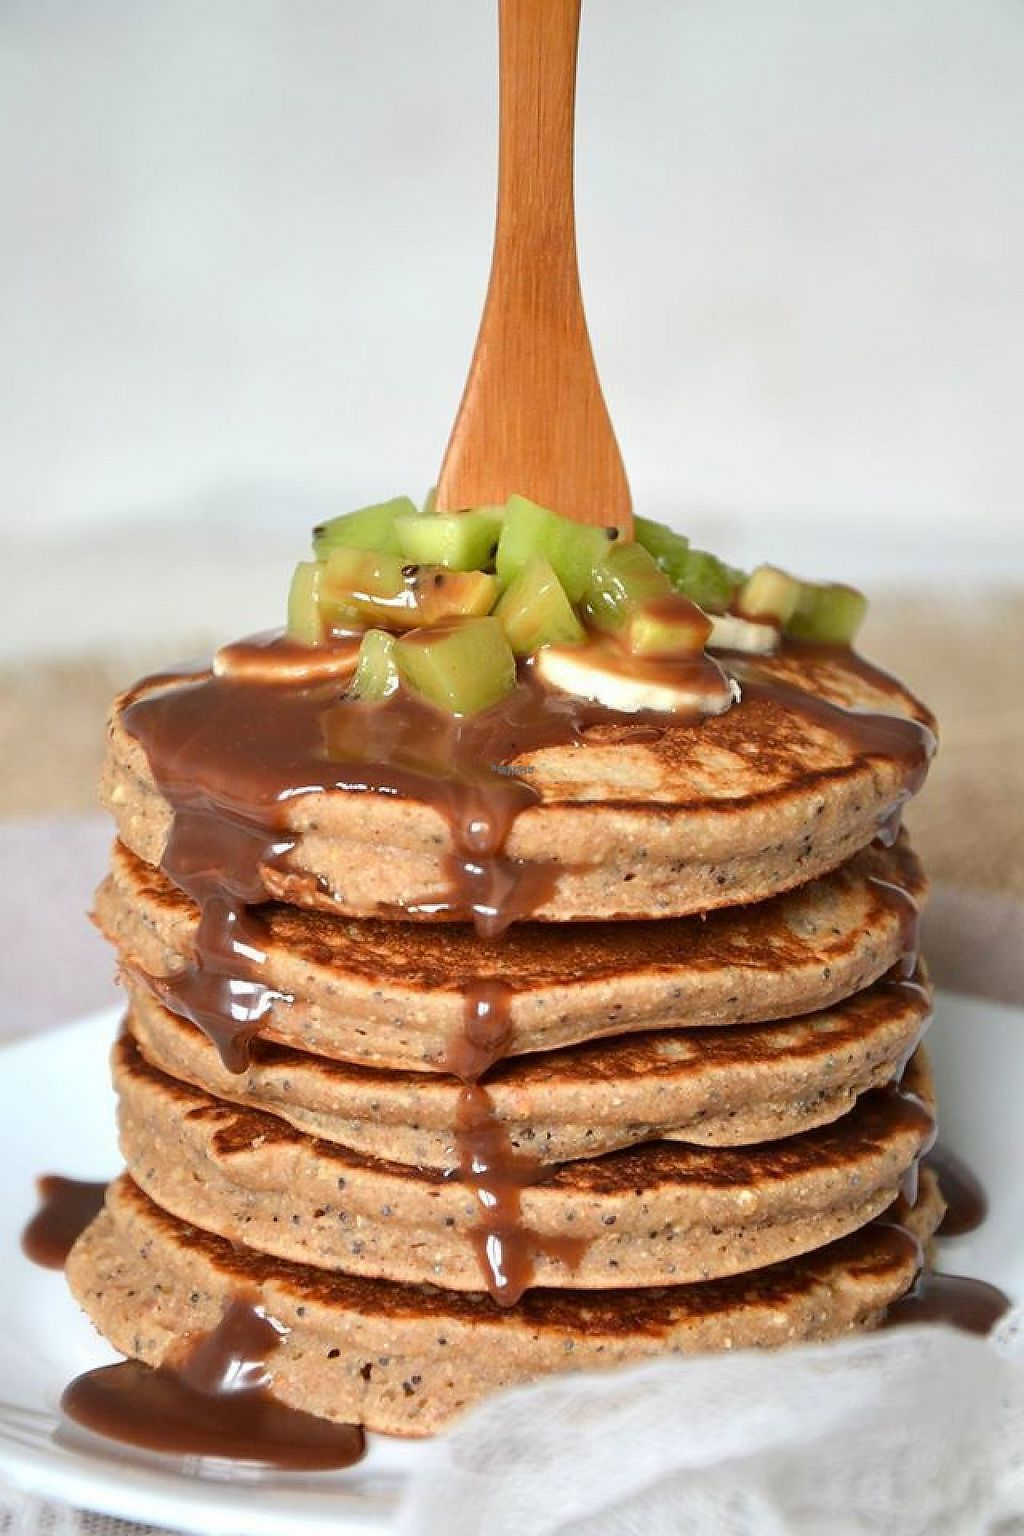 """Photo of La Vie Claire  by <a href=""""/members/profile/community"""">community</a> <br/>vegan pancakes  <br/> February 4, 2017  - <a href='/contact/abuse/image/68788/221835'>Report</a>"""